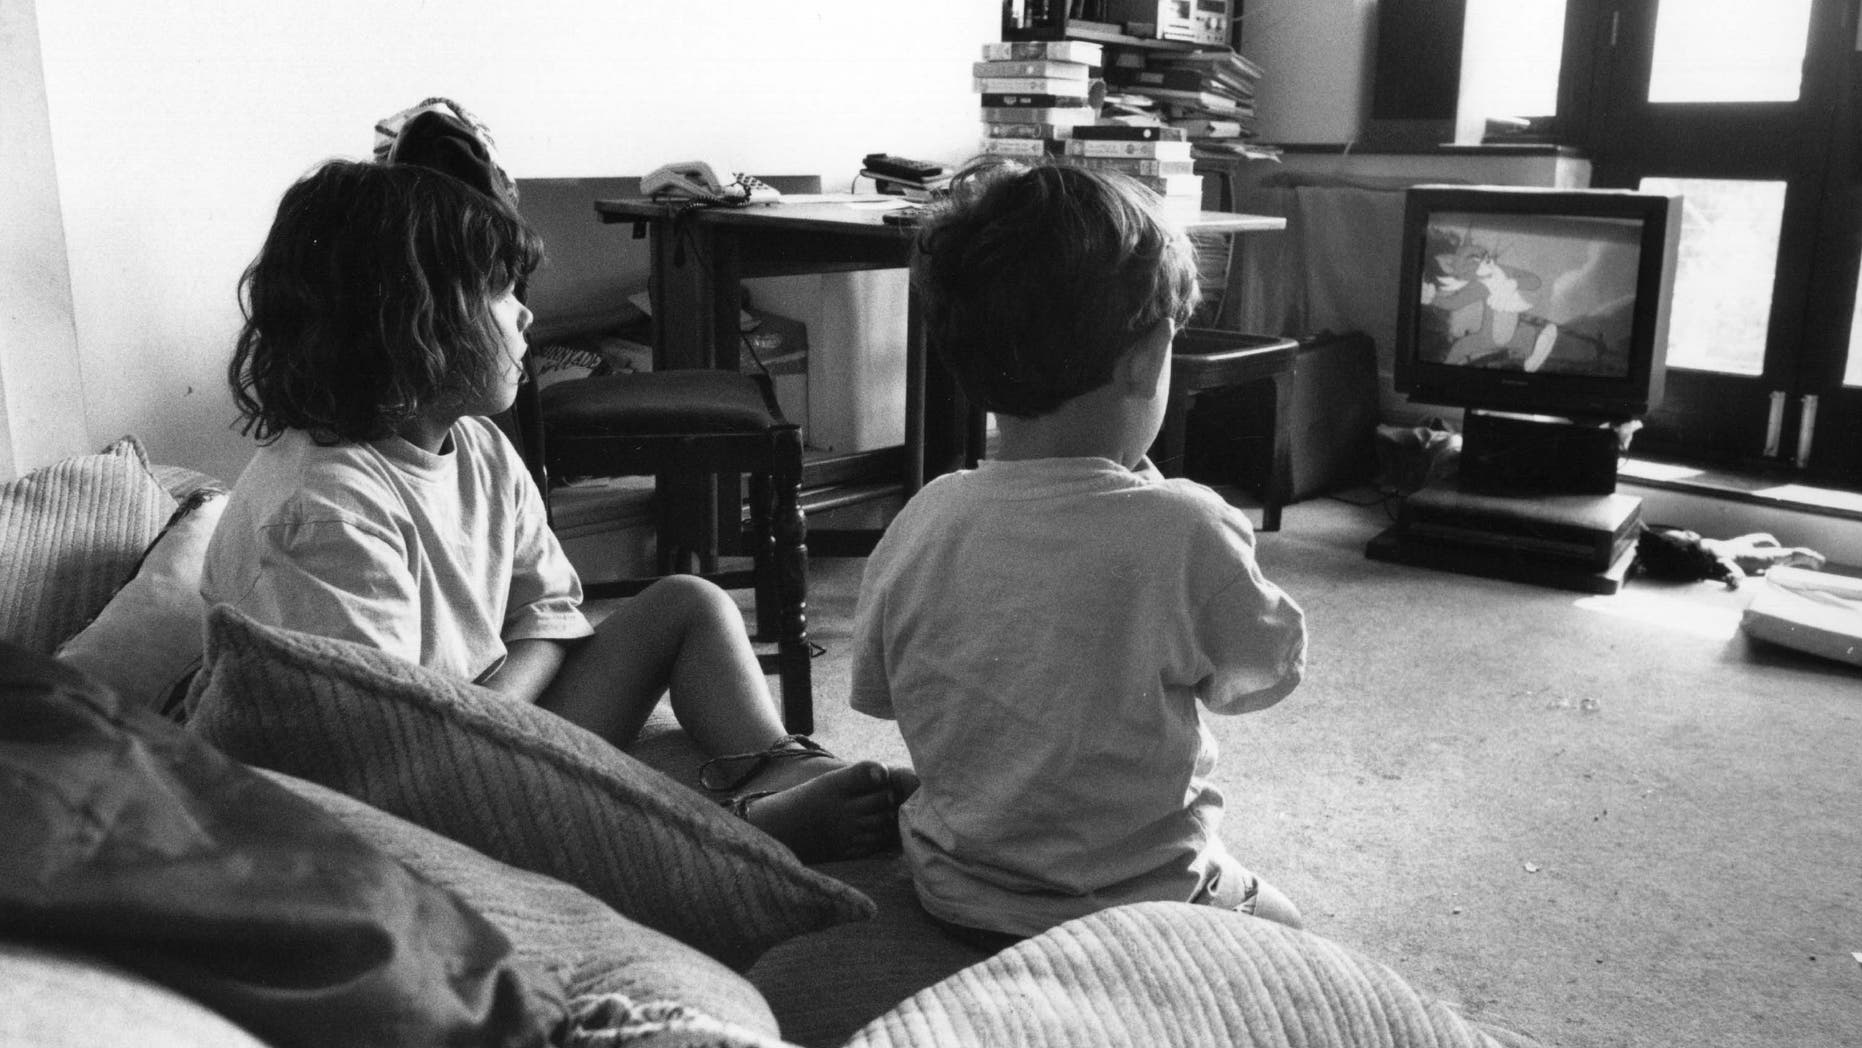 Two children watching a 'Tom And Jerry' cartoon on television, August 1995. (Photo by Steve Eason/Hulton Archive/Getty Images)